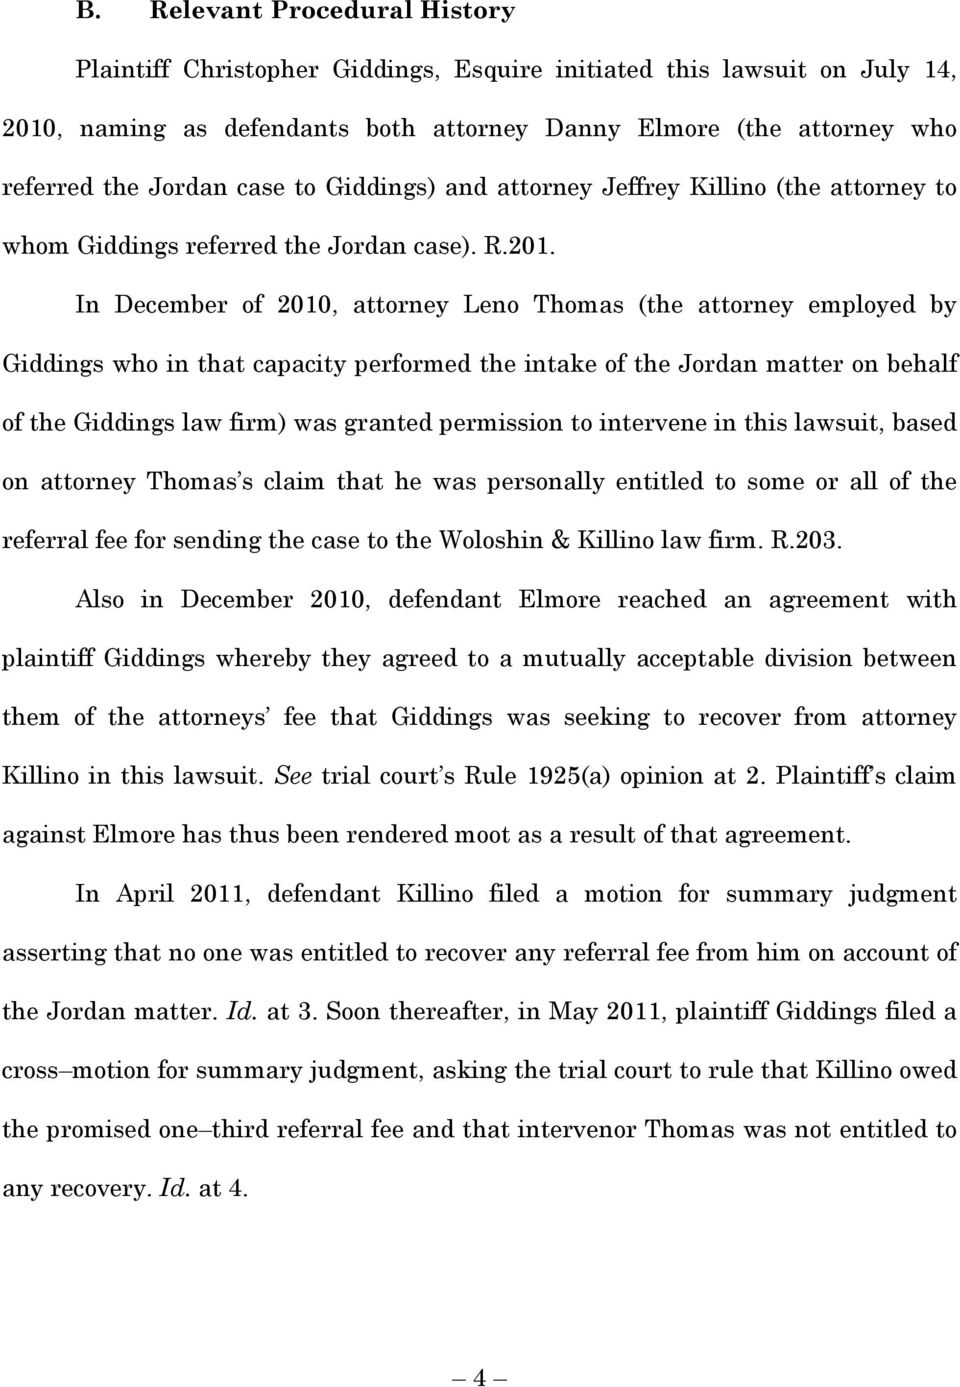 In December of 2010, attorney Leno Thomas (the attorney employed by Giddings who in that capacity performed the intake of the Jordan matter on behalf of the Giddings law firm) was granted permission